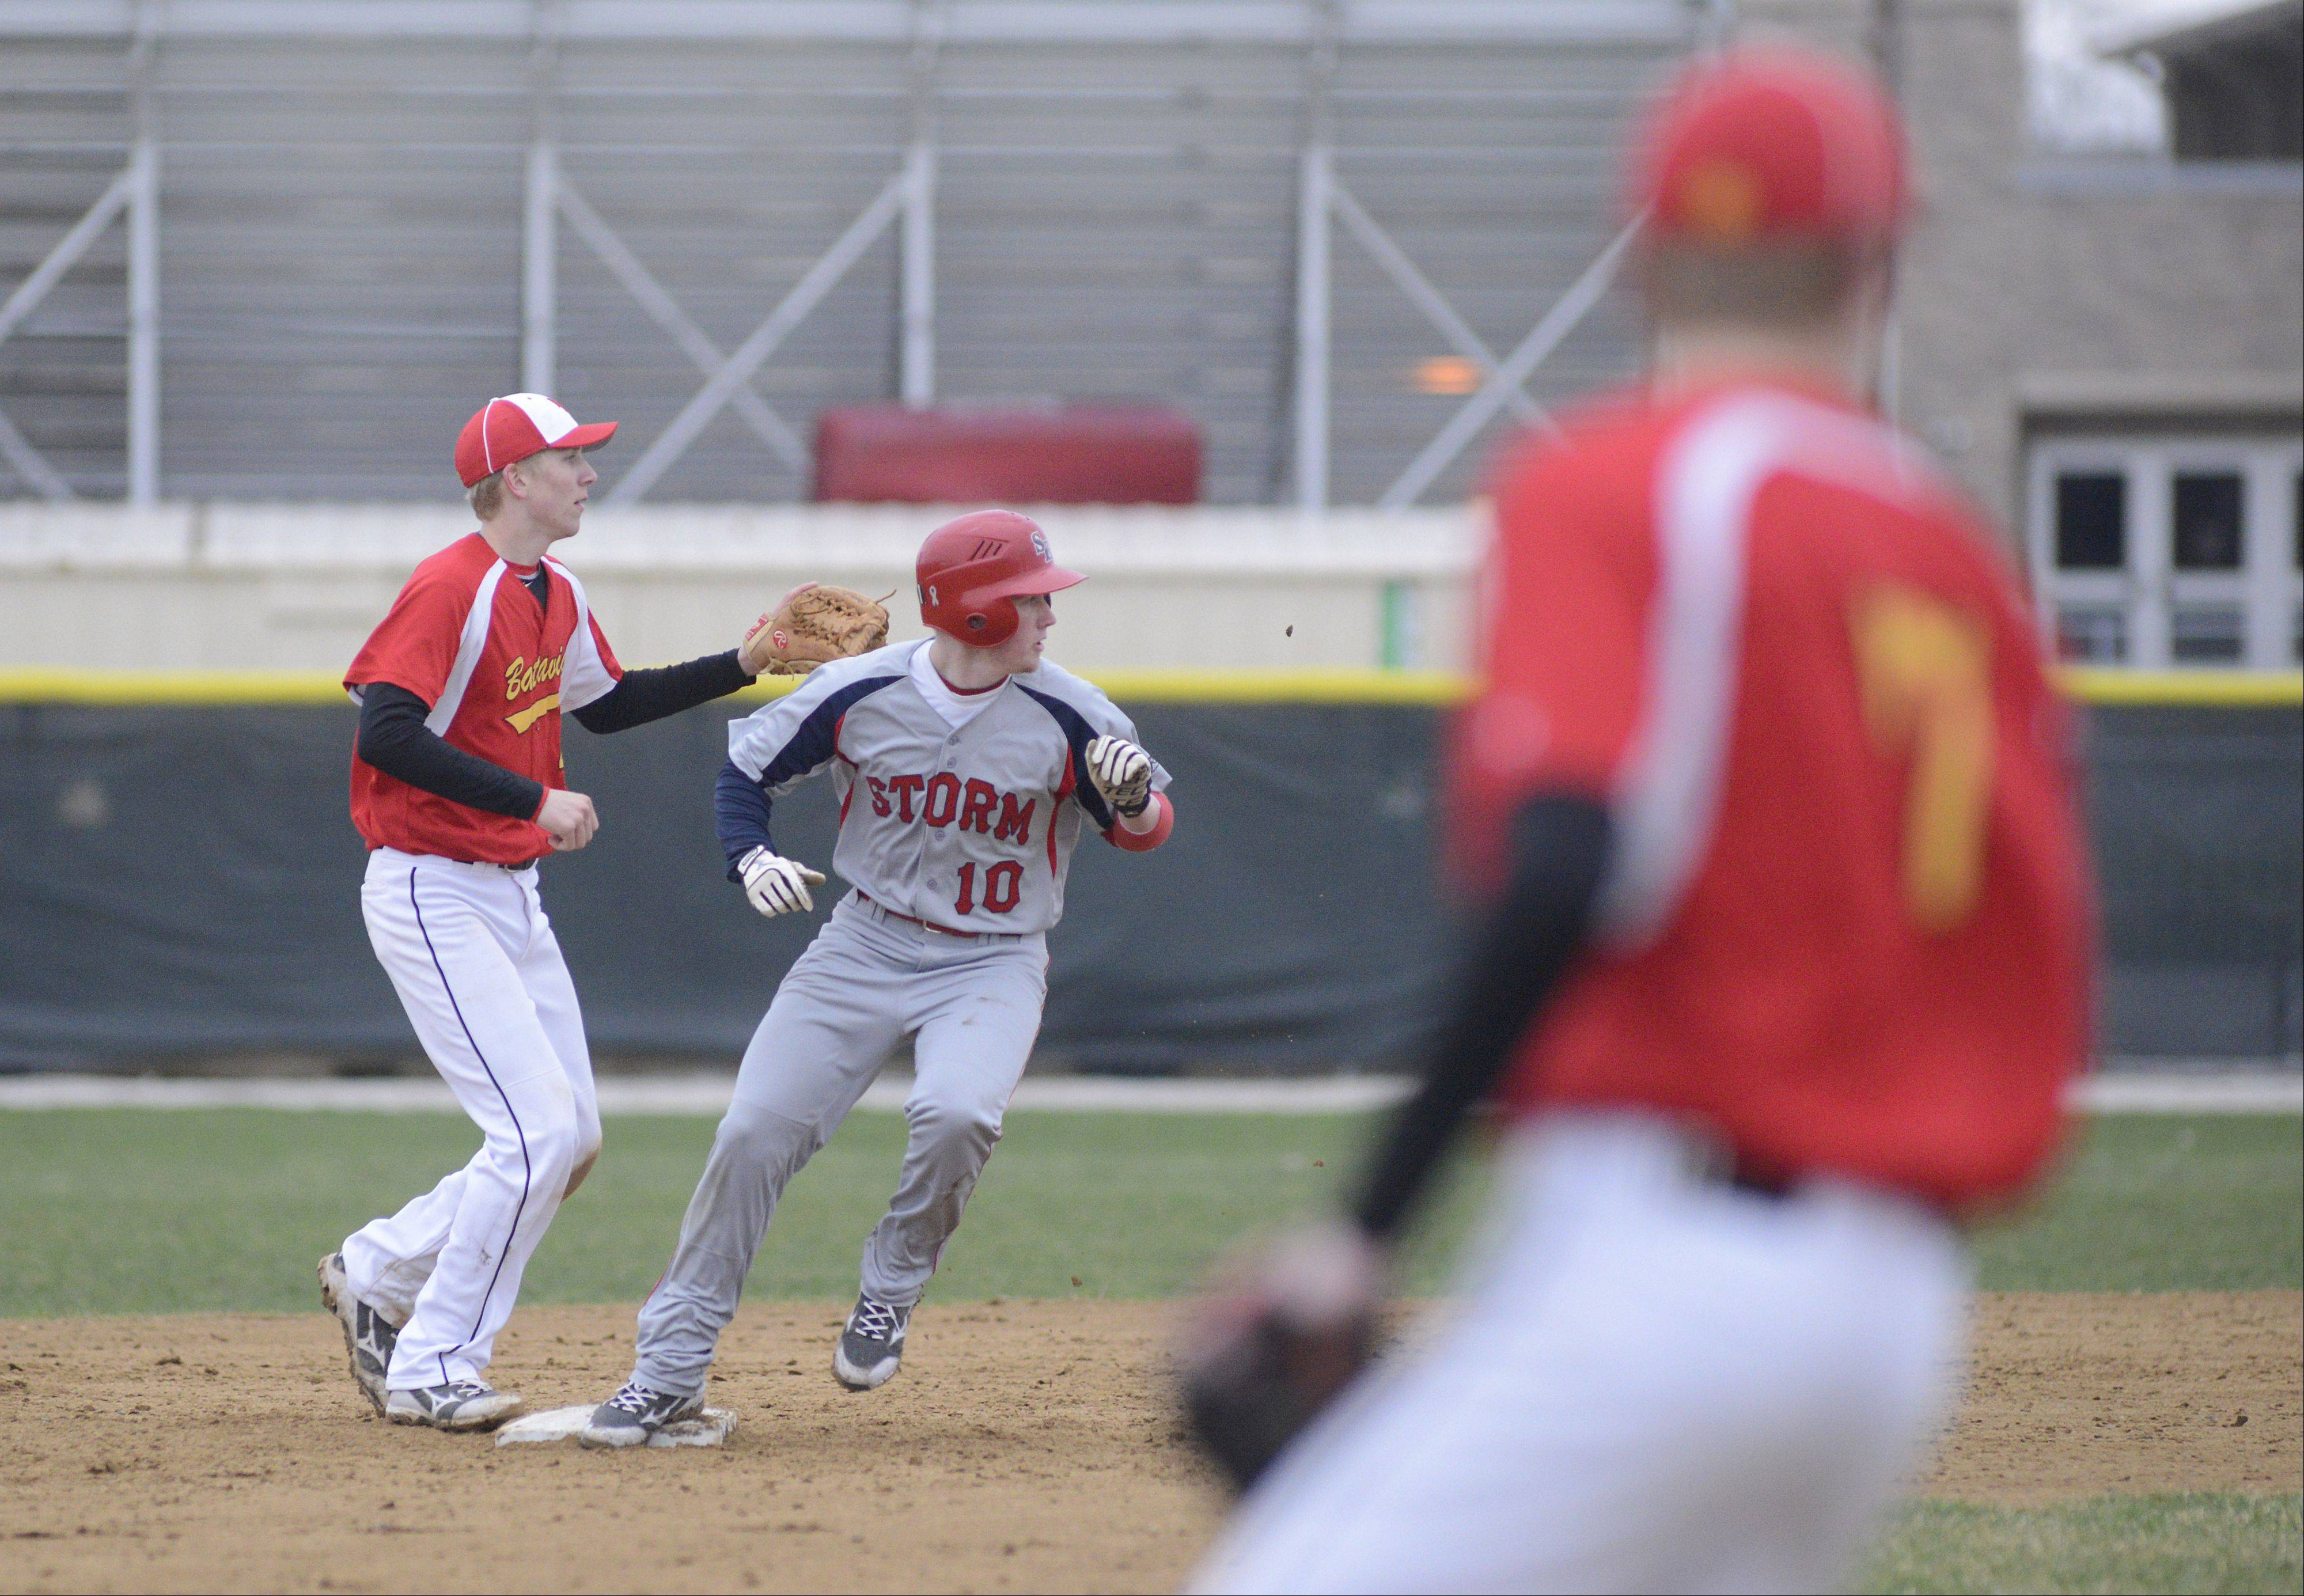 South Elgin's Tyler Thorsen is safe on second base from Batavia's Billy Zwick in the third inning on Friday, April 12.